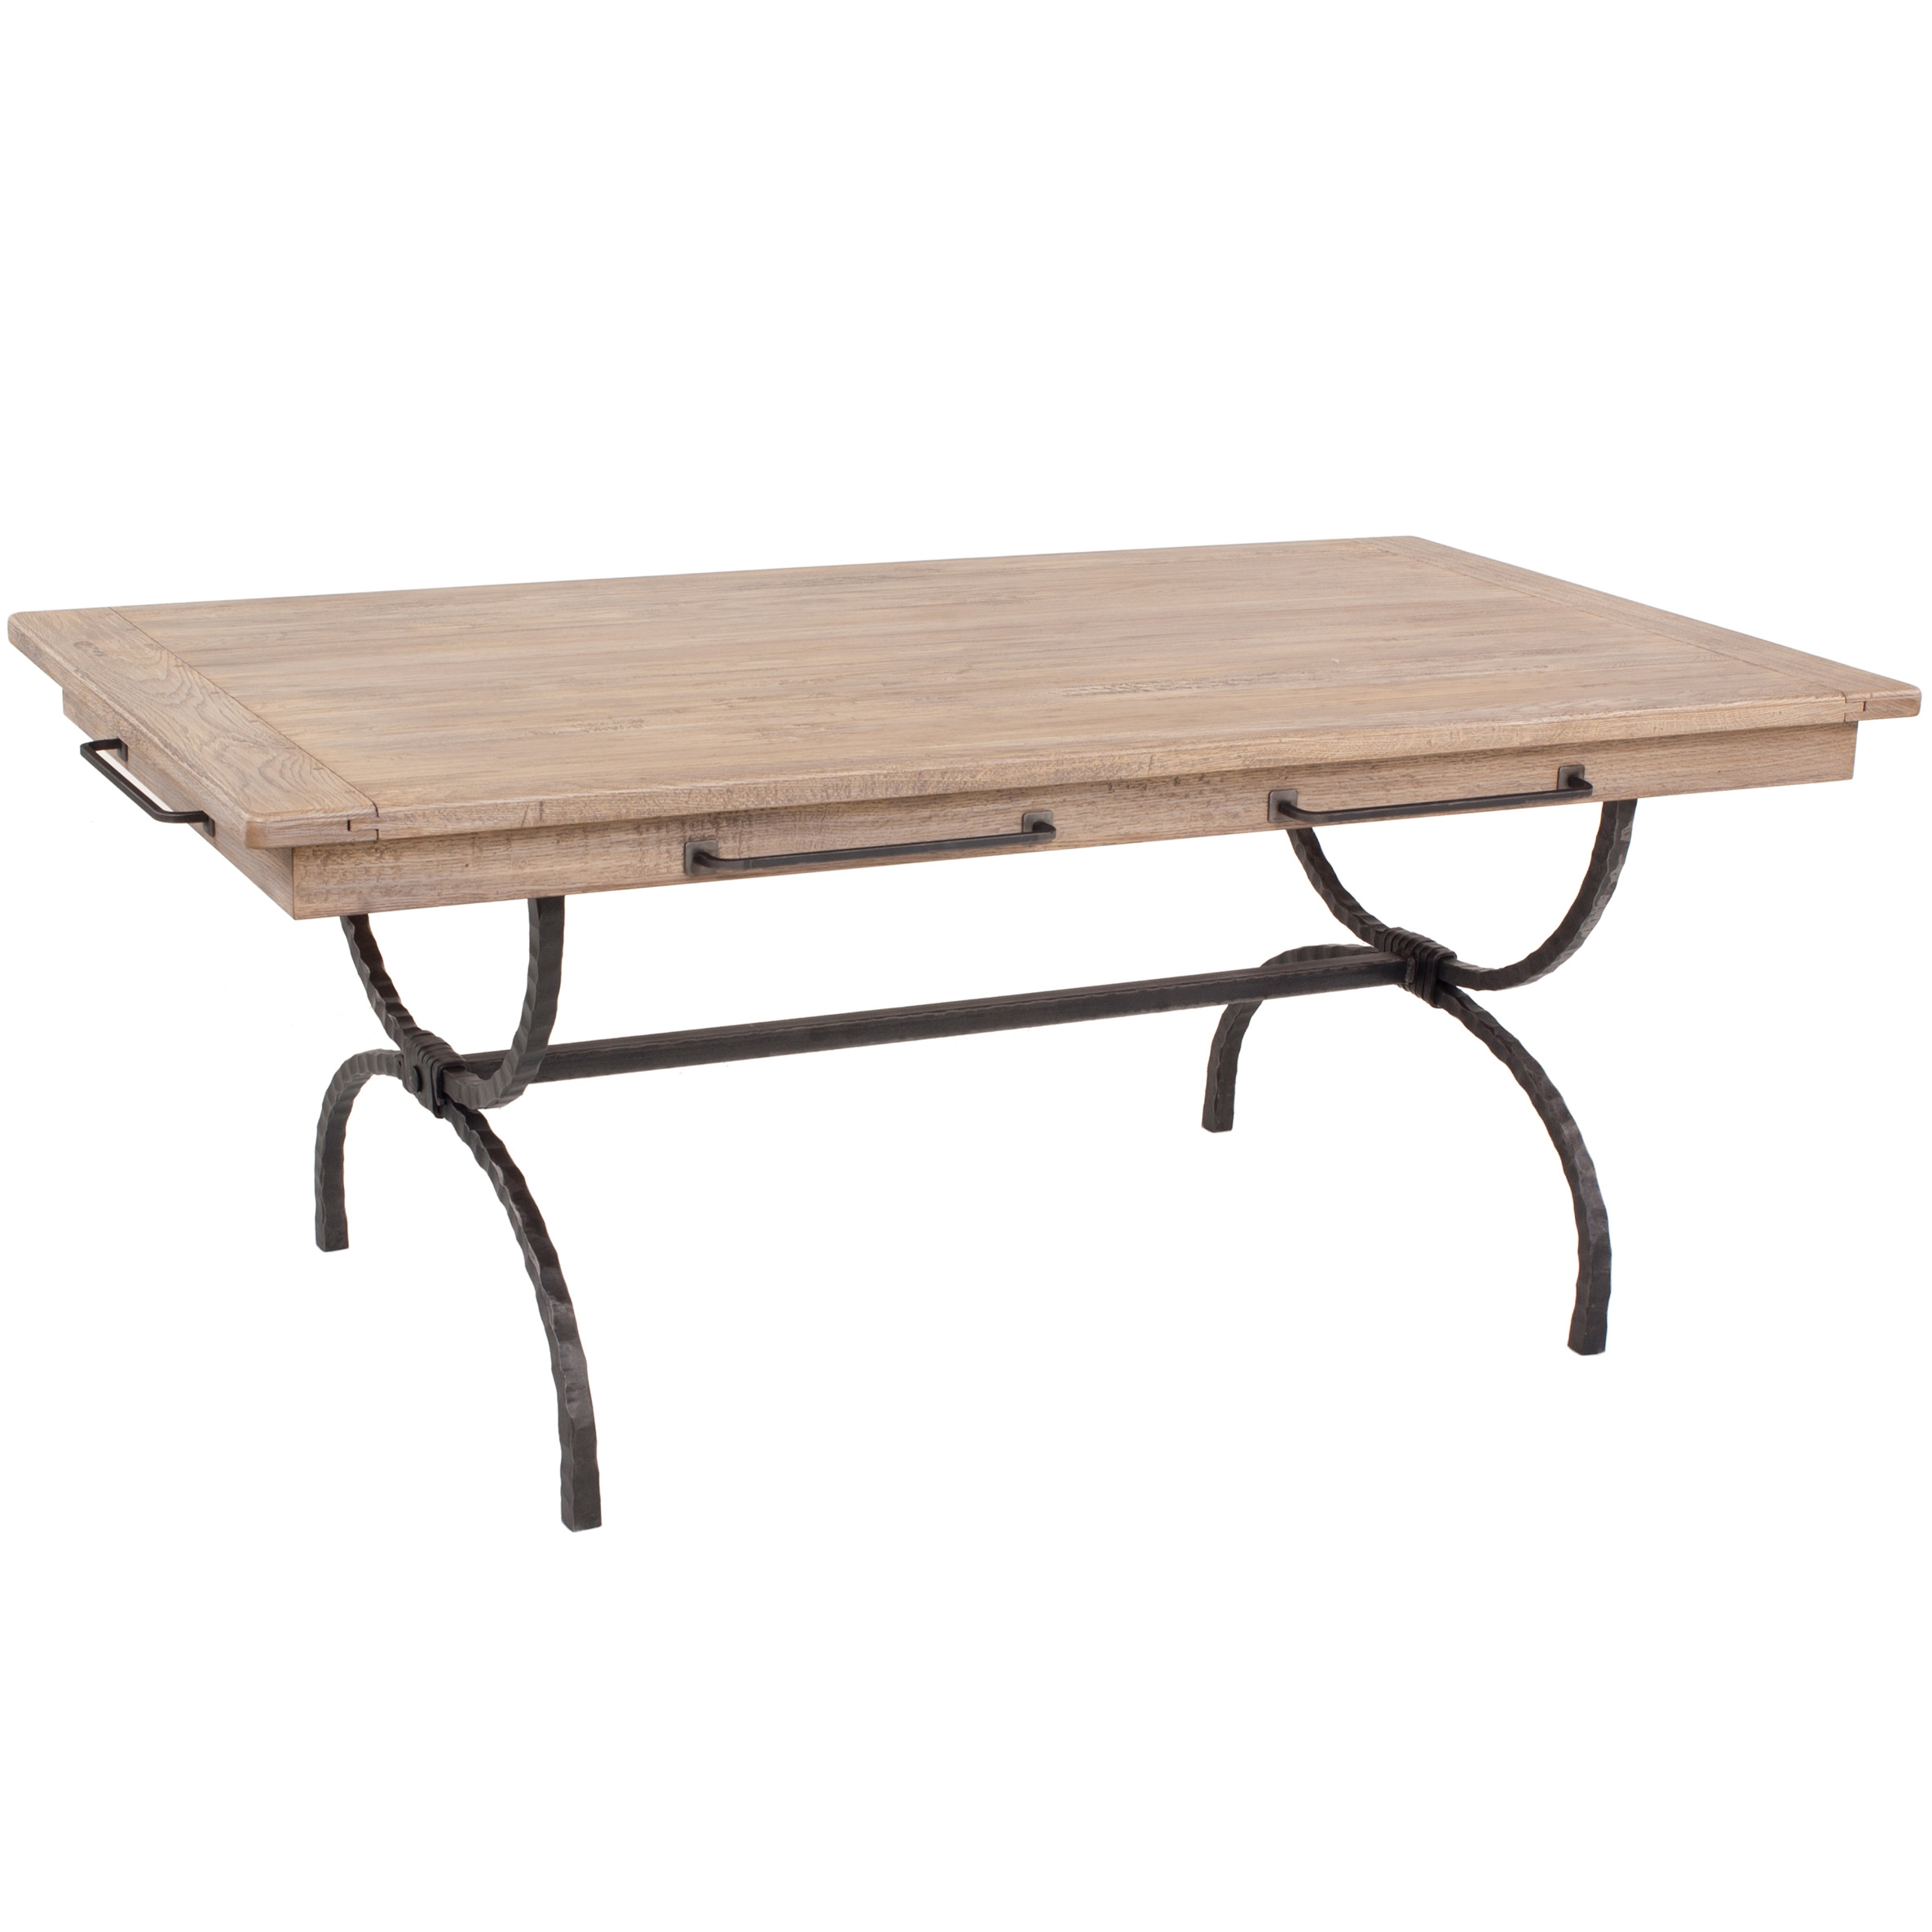 Pictured Here Is The Wrought Iron Legacy Rectangular Dining Table With